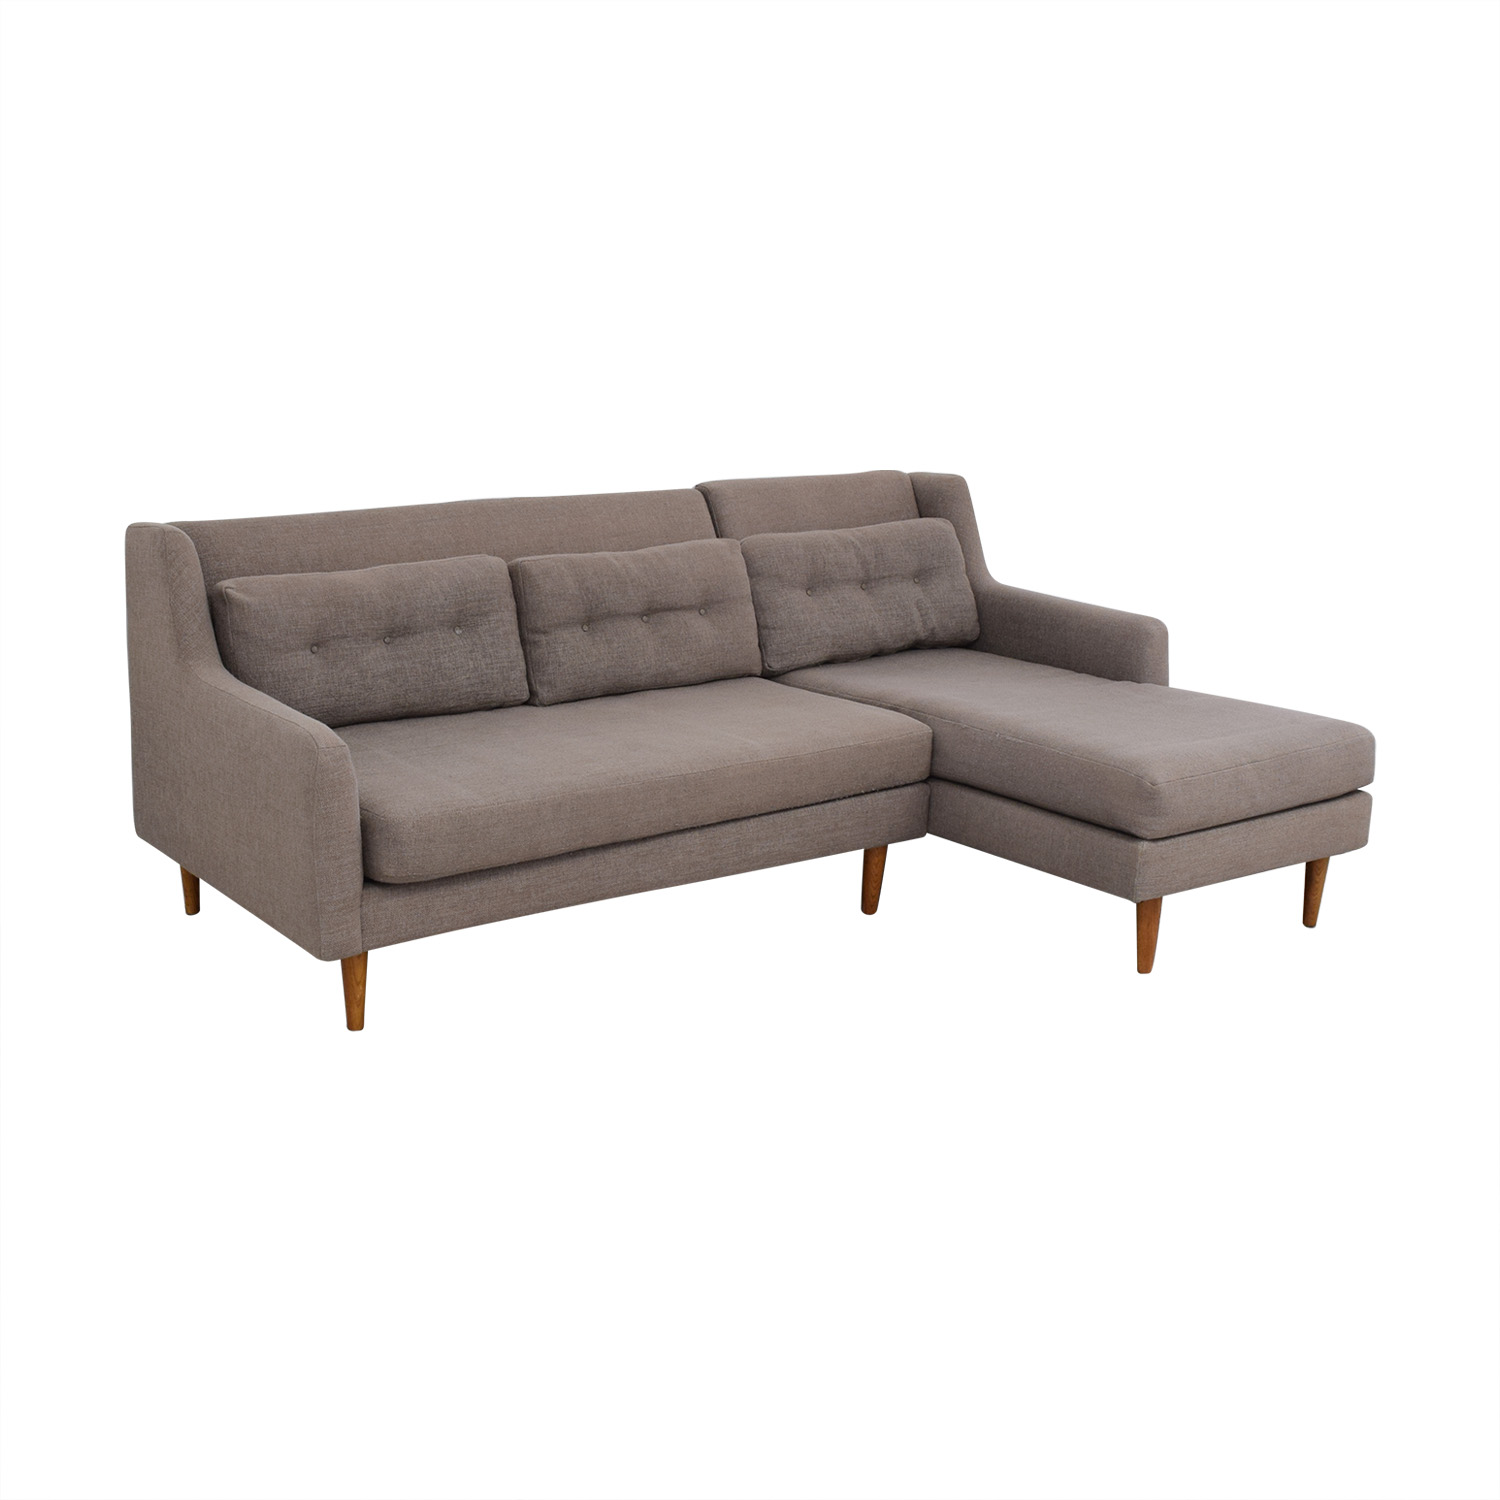 West Elm West Elm Crosby Mid-Century Sectional Sofa with Chaise price